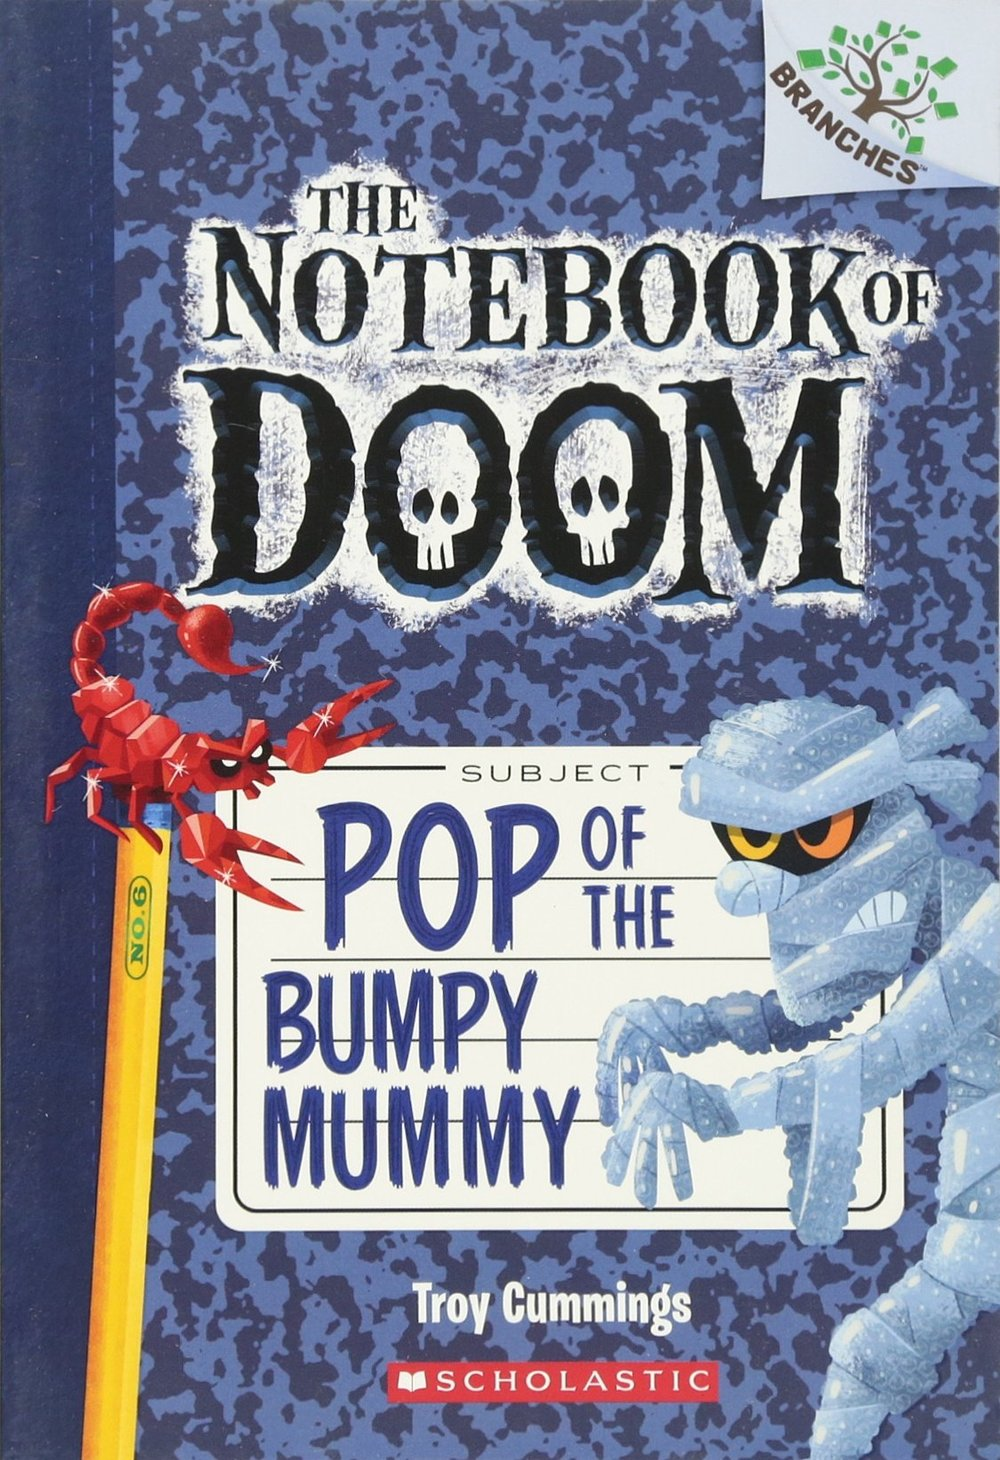 BOOK 6: Pop of the Bumpy Mummy